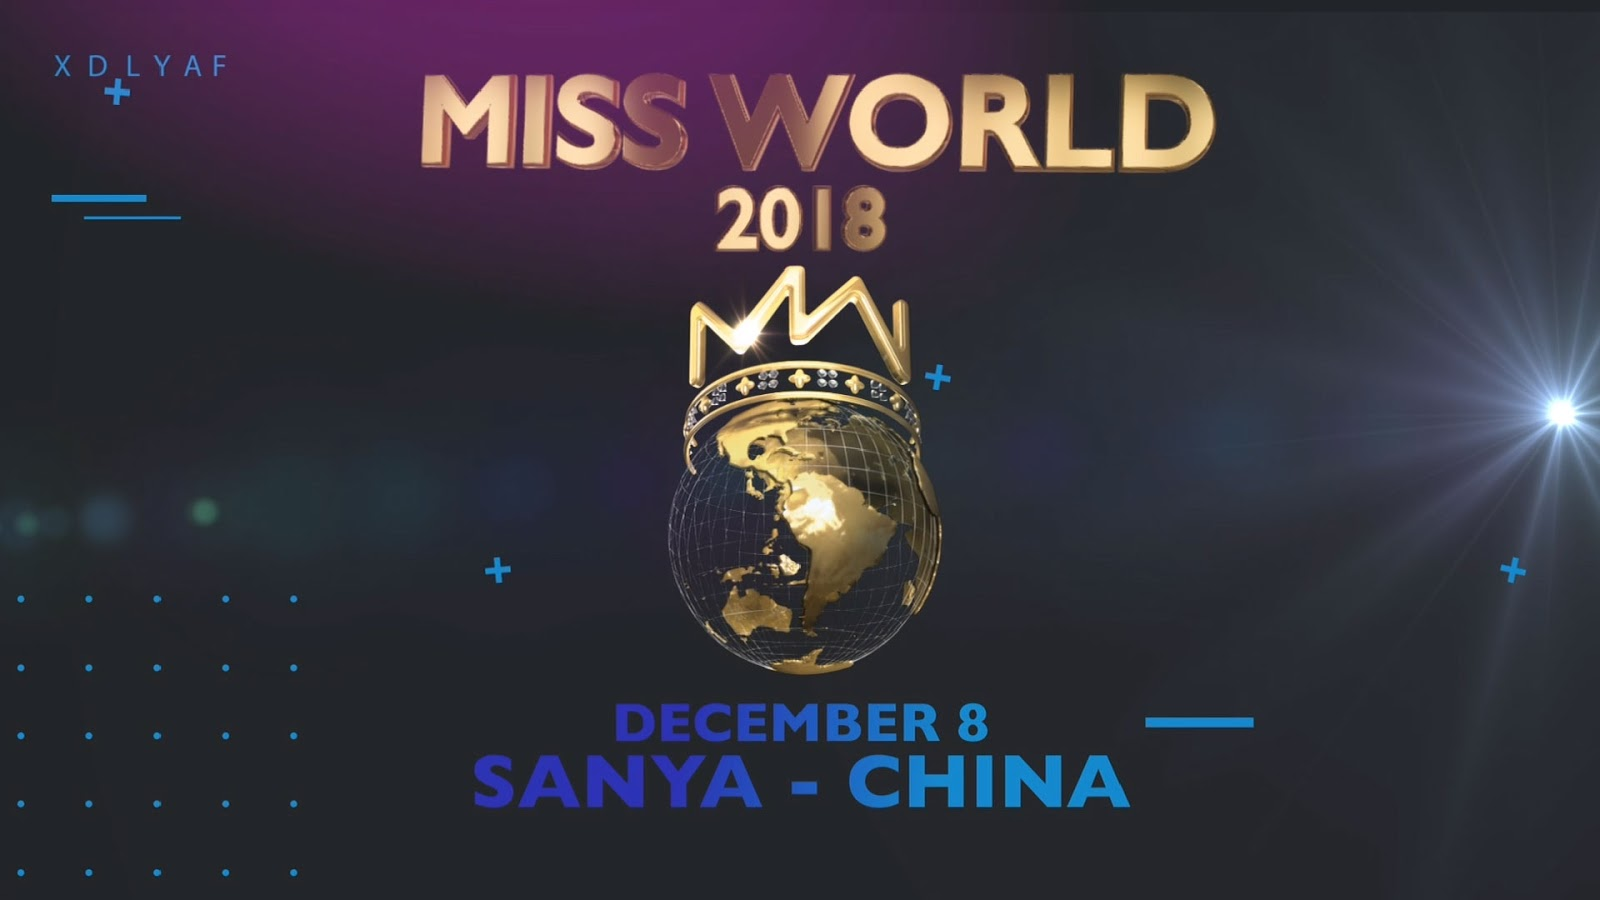 Frekuensi siaran MISS WORLD HD MAIN di satelit Telkom 3S Terbaru